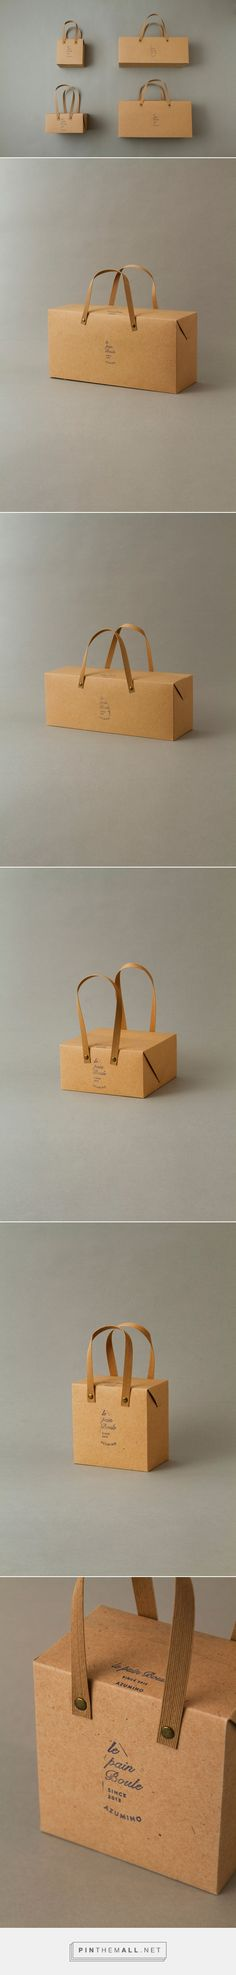 Artless Inc. le pain boule new gift box packaging curated by Packaging Diva PD